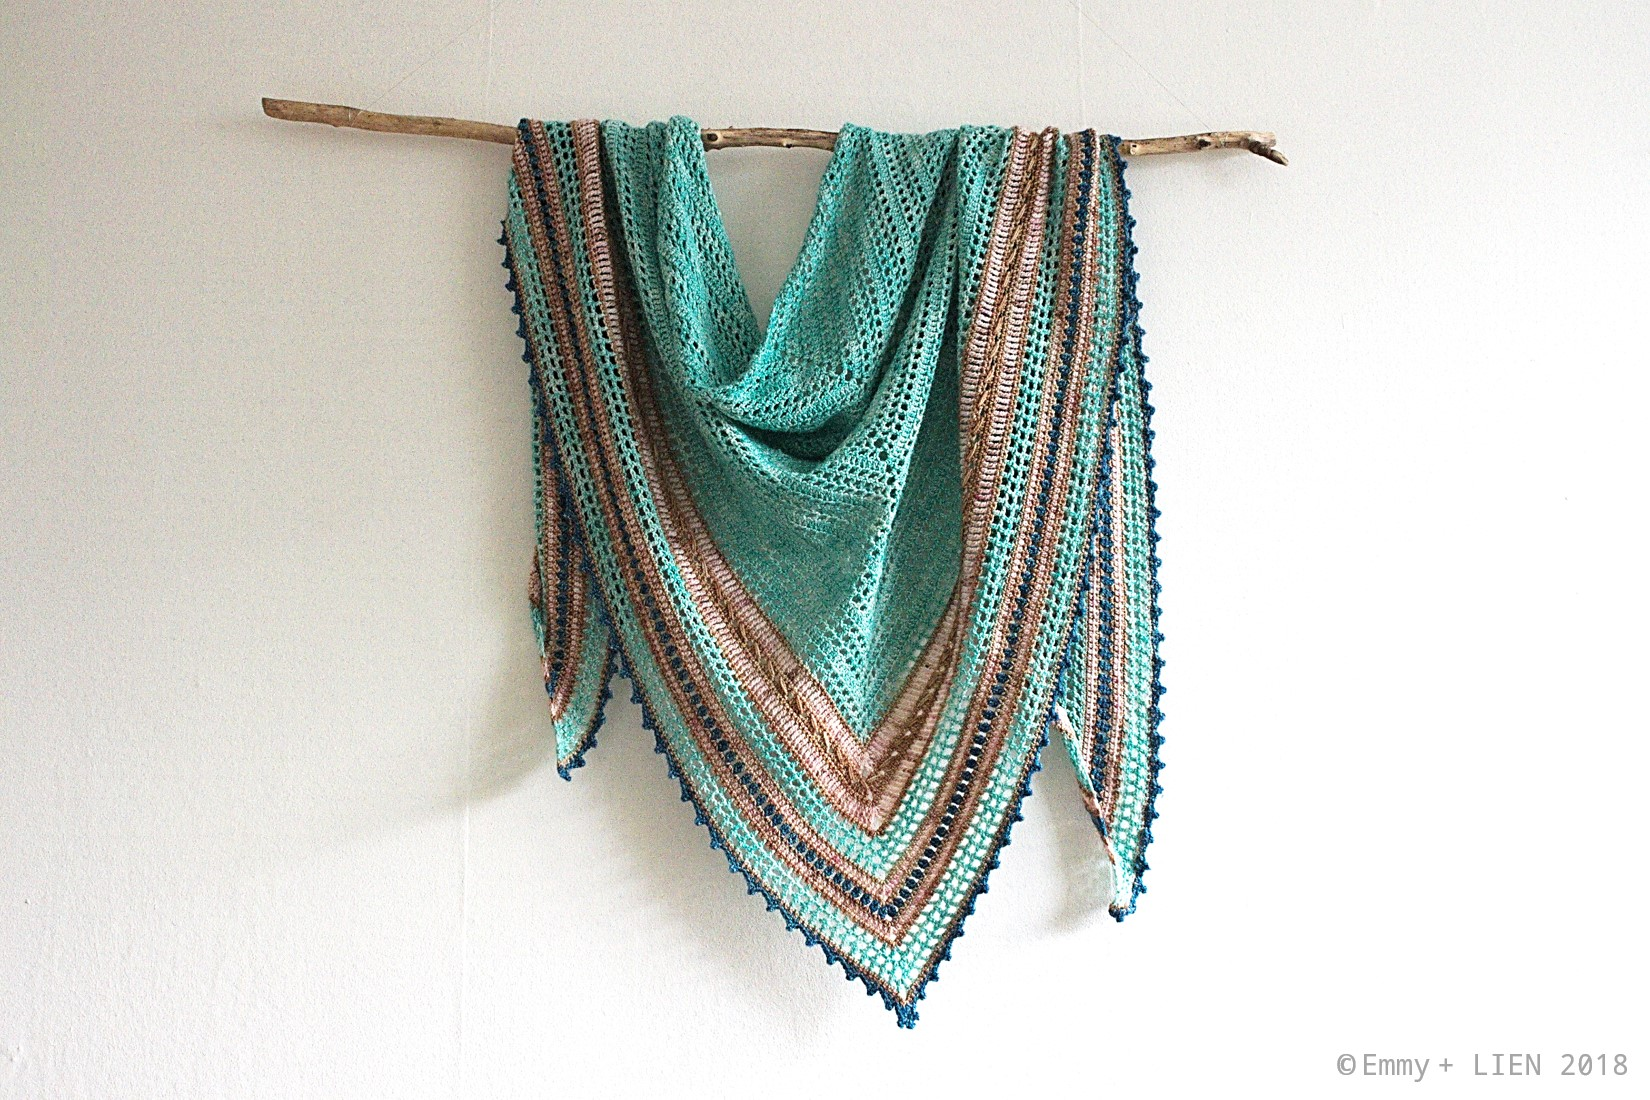 Seaglass Shawl | a crochet pattern by Eline Alcocer @ Emmy + LIEN.